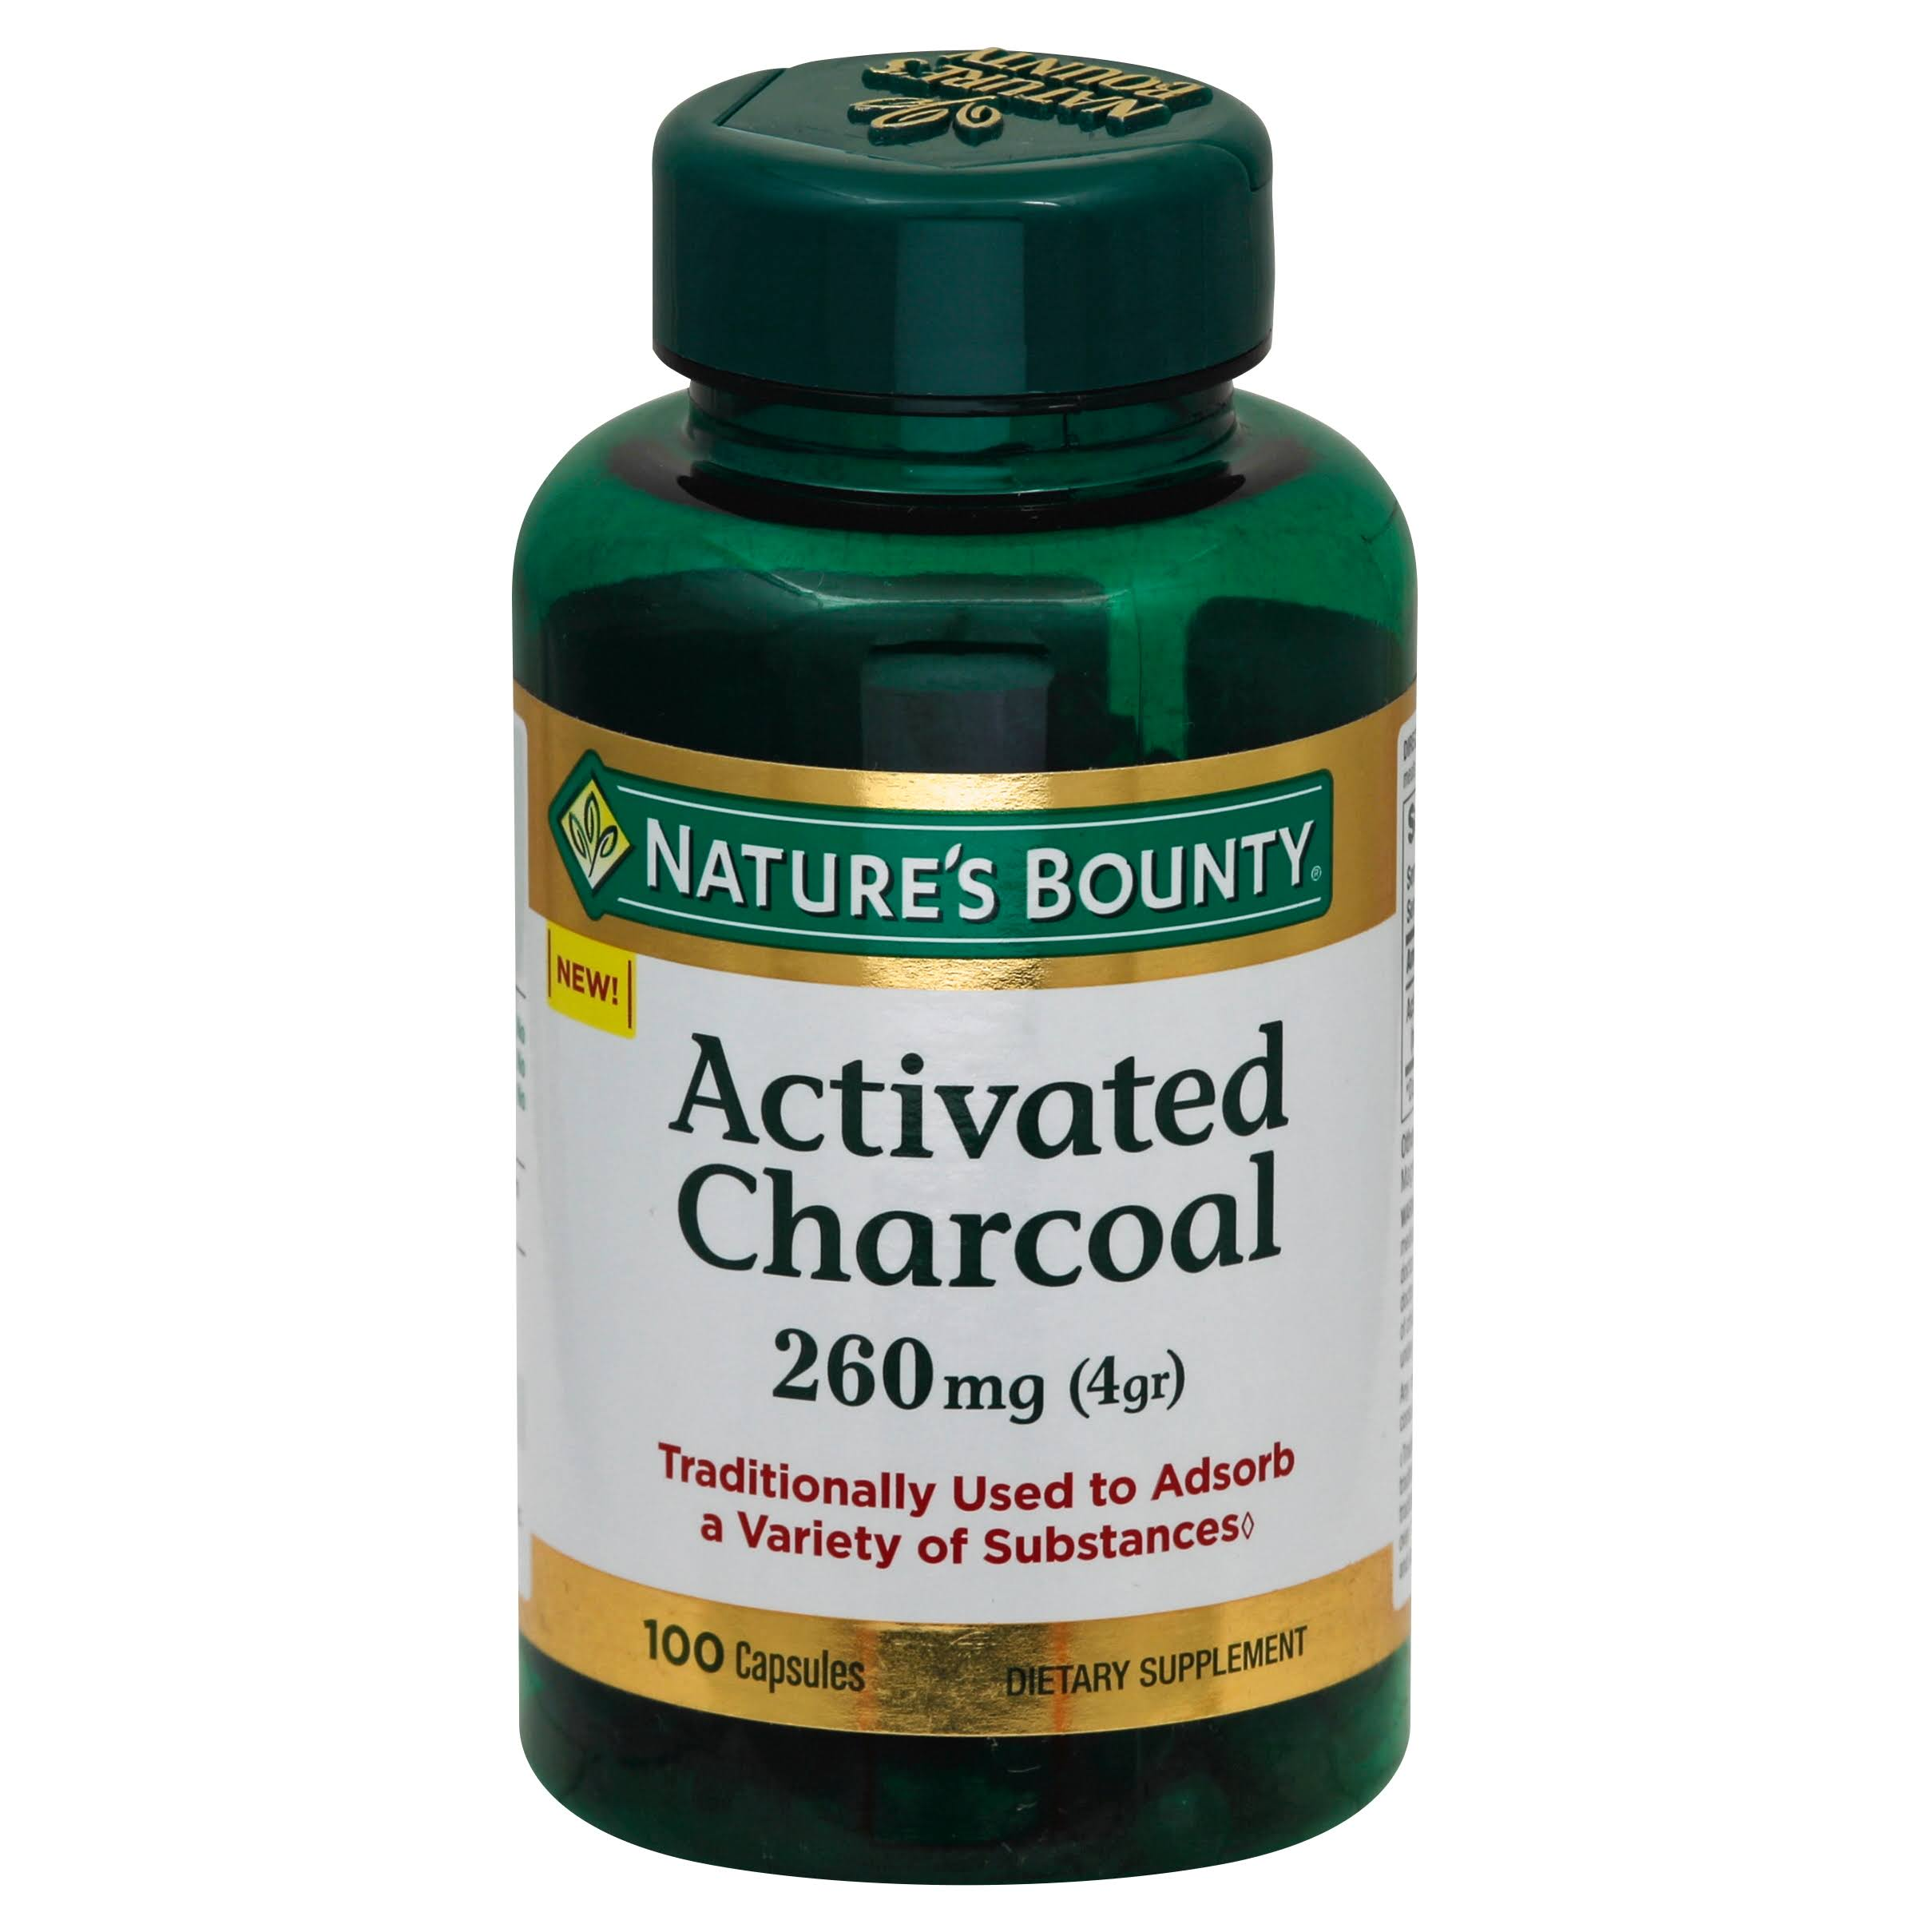 Nature's Bounty Activated Charcoal Supplement - 260mg, 100ct